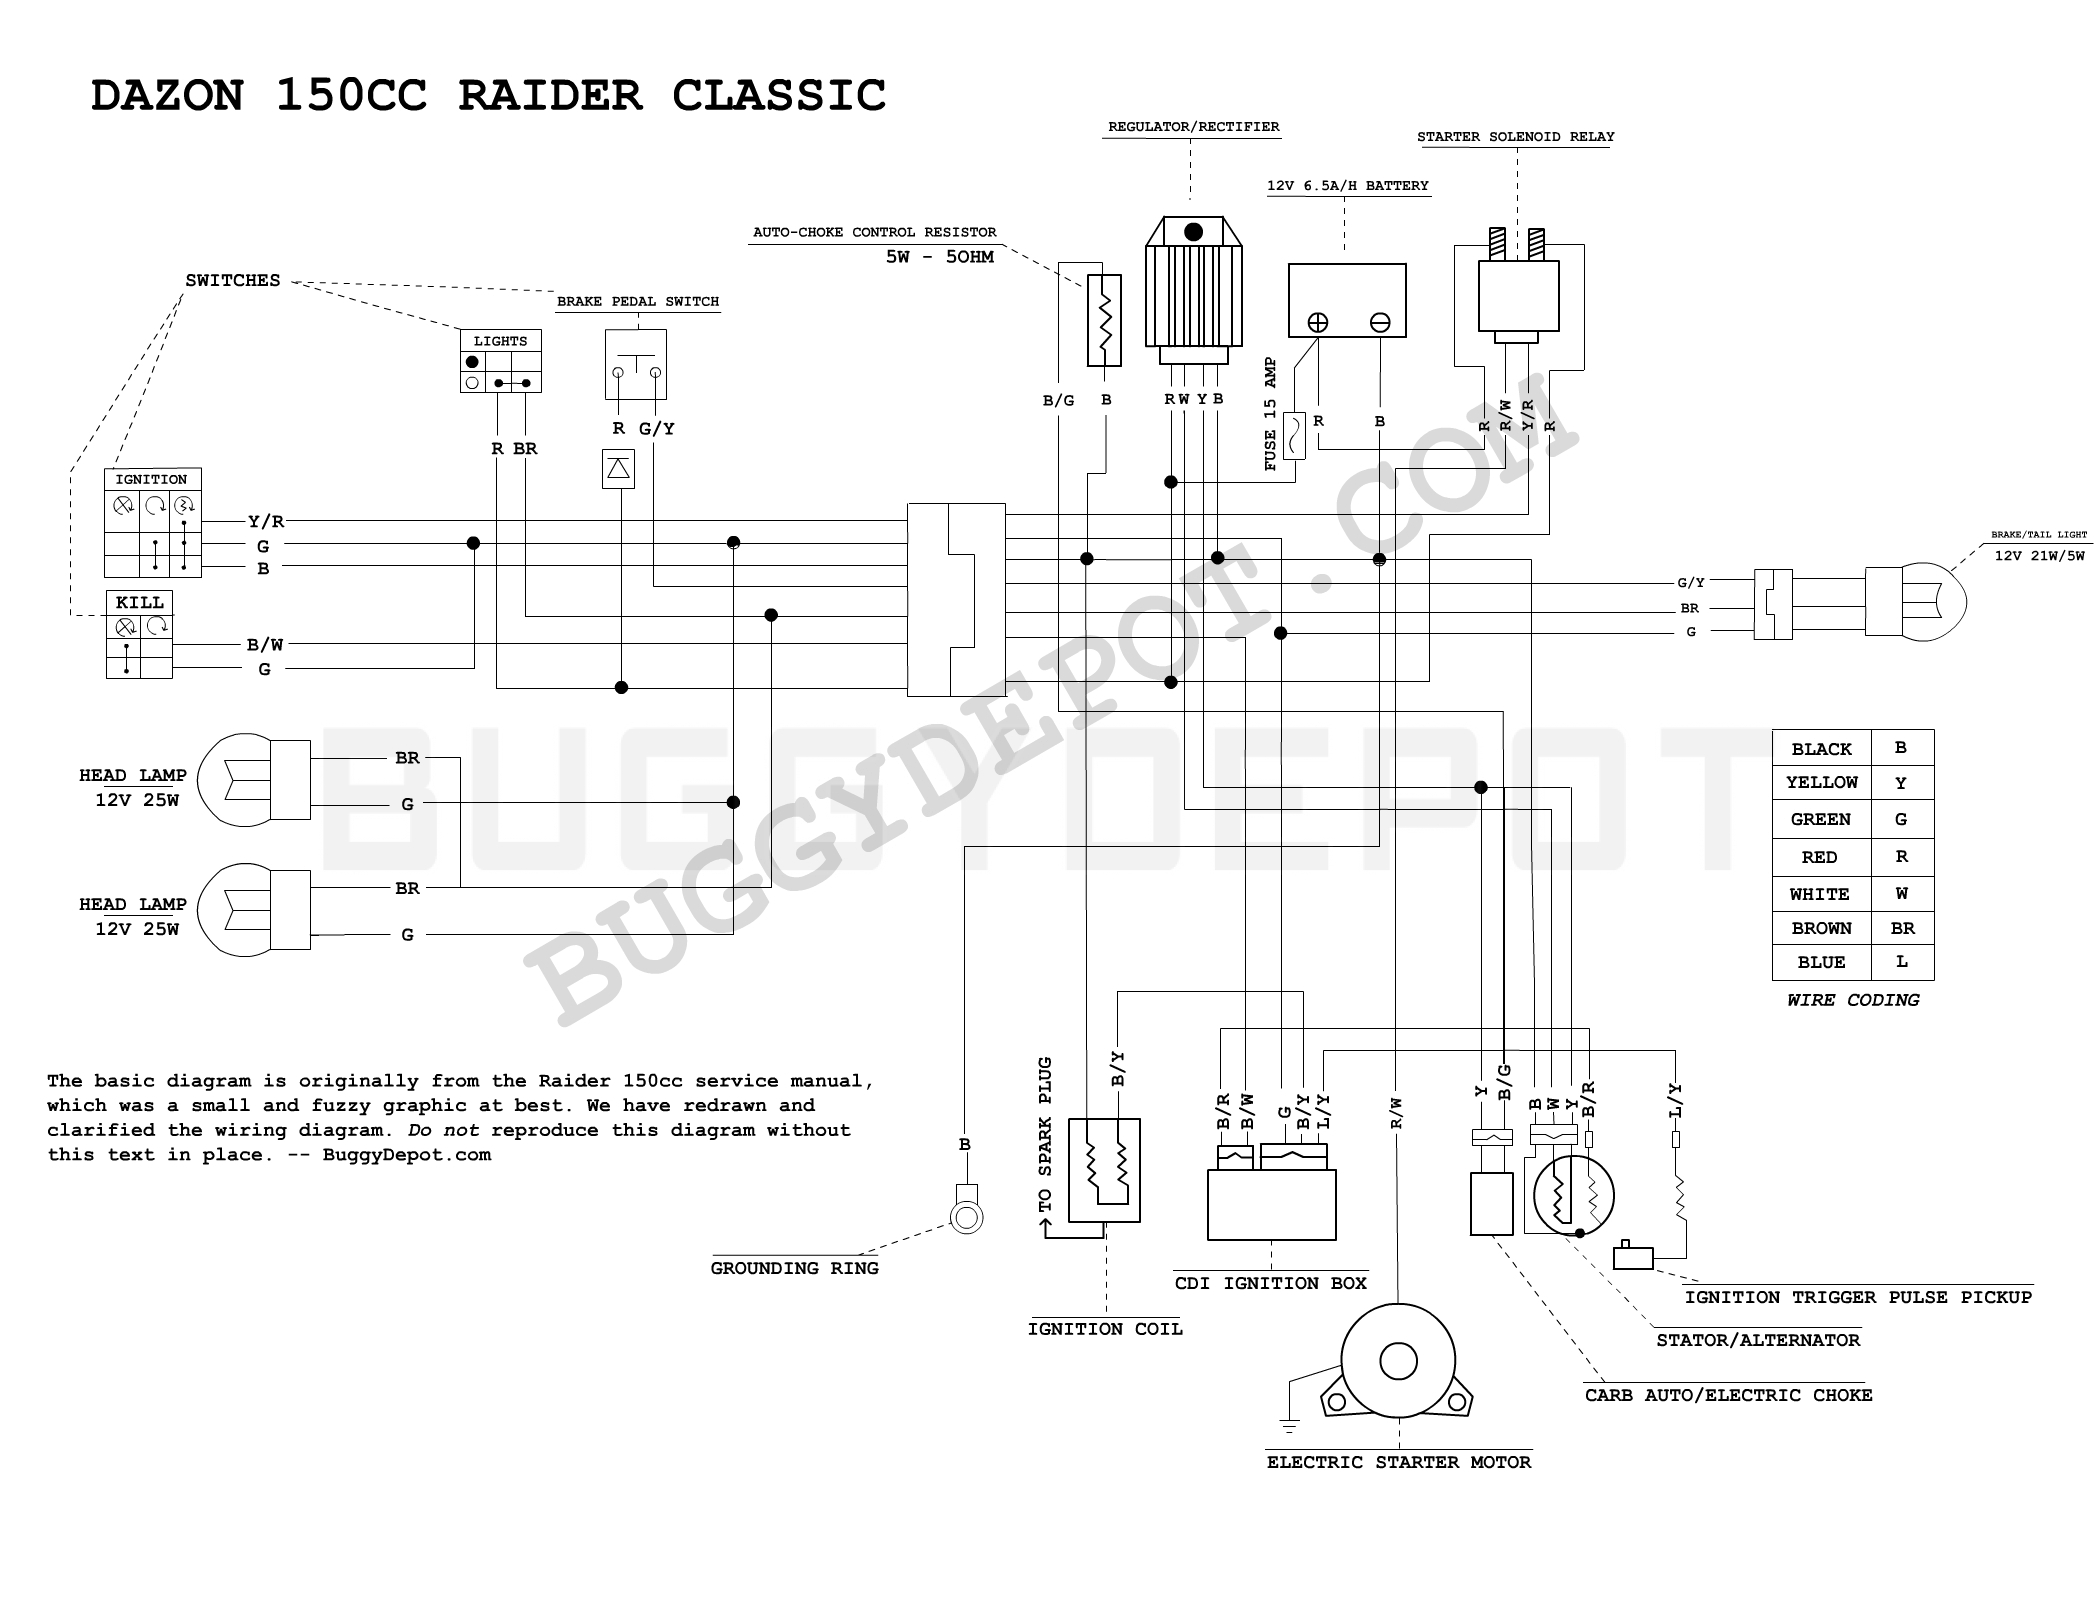 article_33_1278205207 dazon raider classic wiring diagram buggy depot technical center chinese atv stator wiring diagram at readyjetset.co